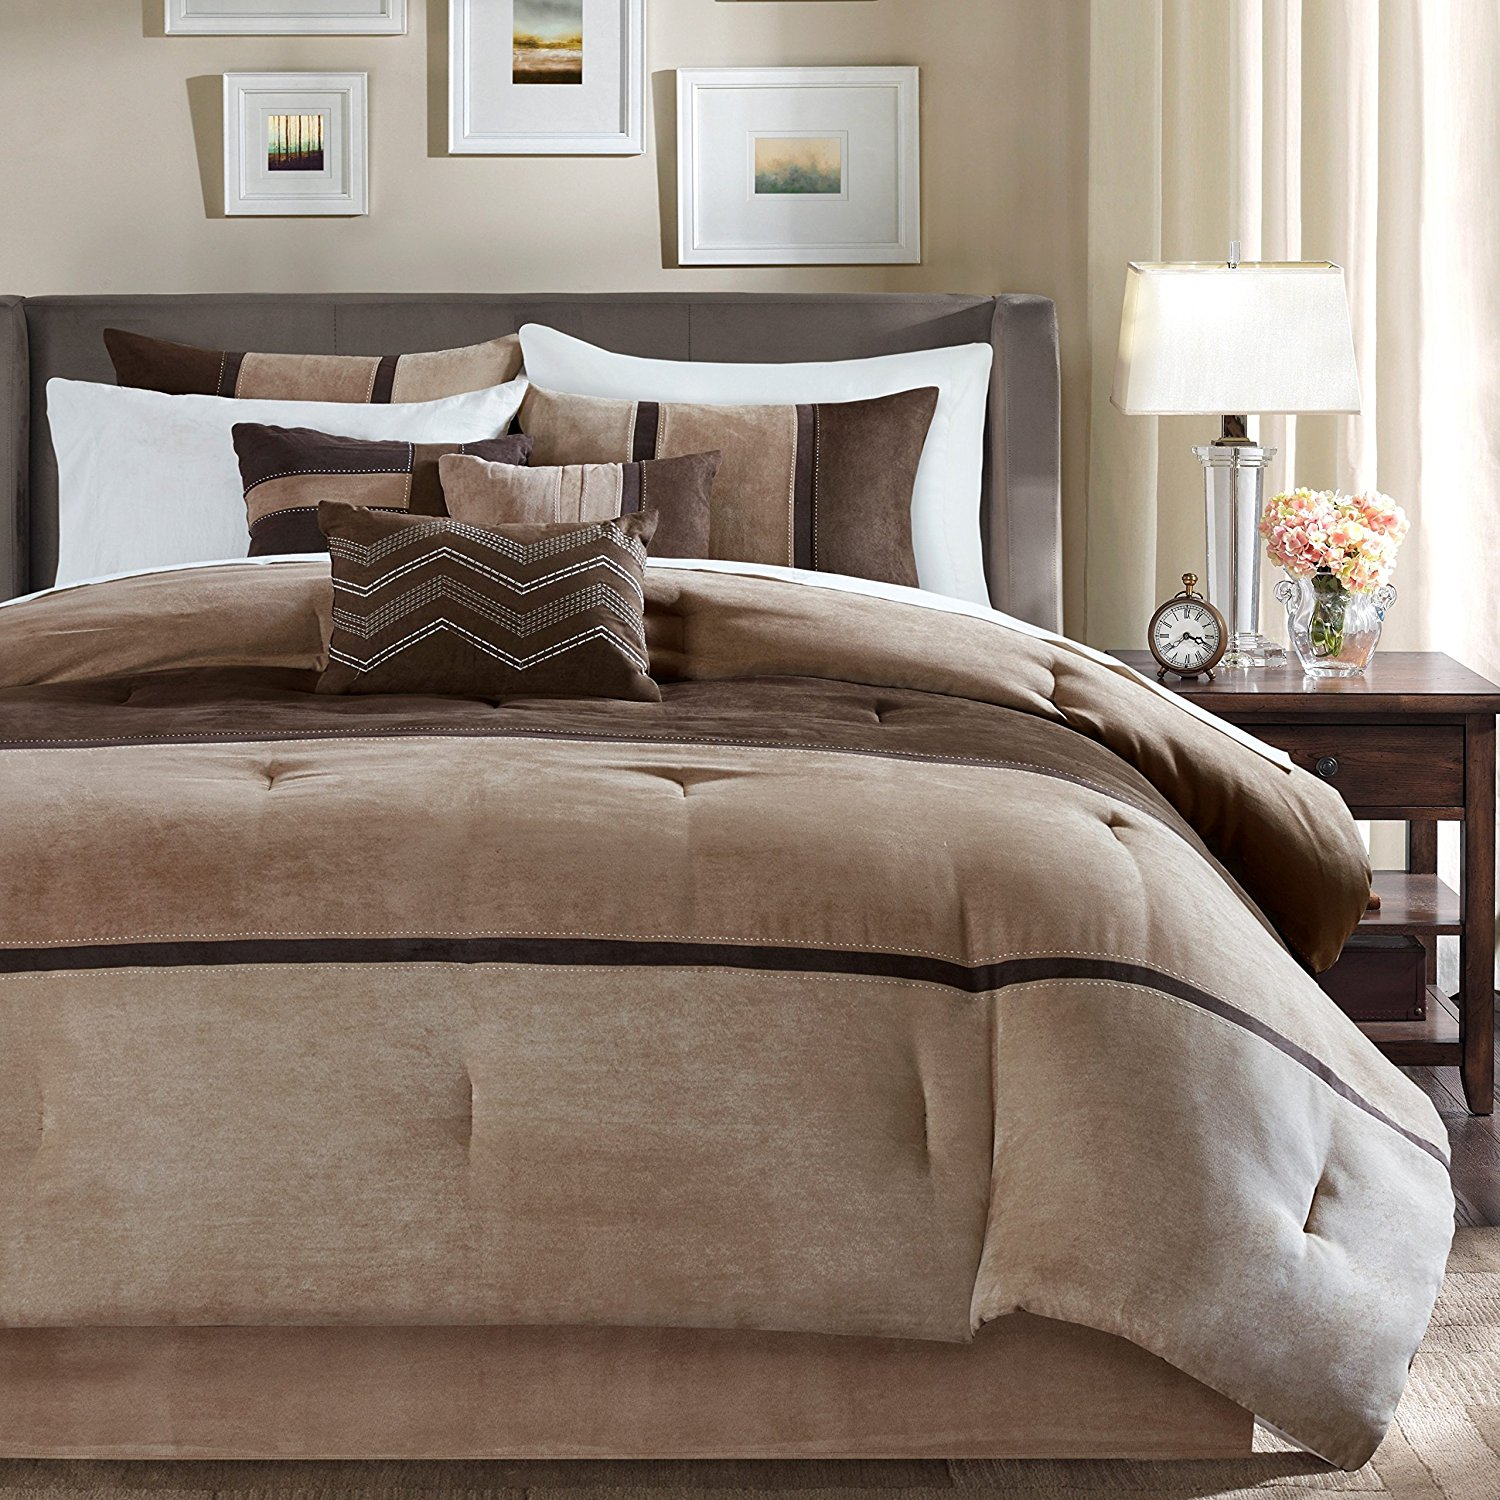 7 Piece Tan Chocolate Brown Striped Comforter Queen Set, Dark Taupe Color Block Adult Bedding Master Bedroom Stylish Patchwork Pattern Elegant Embroidered Pillow Traditional, Polyester Stripe